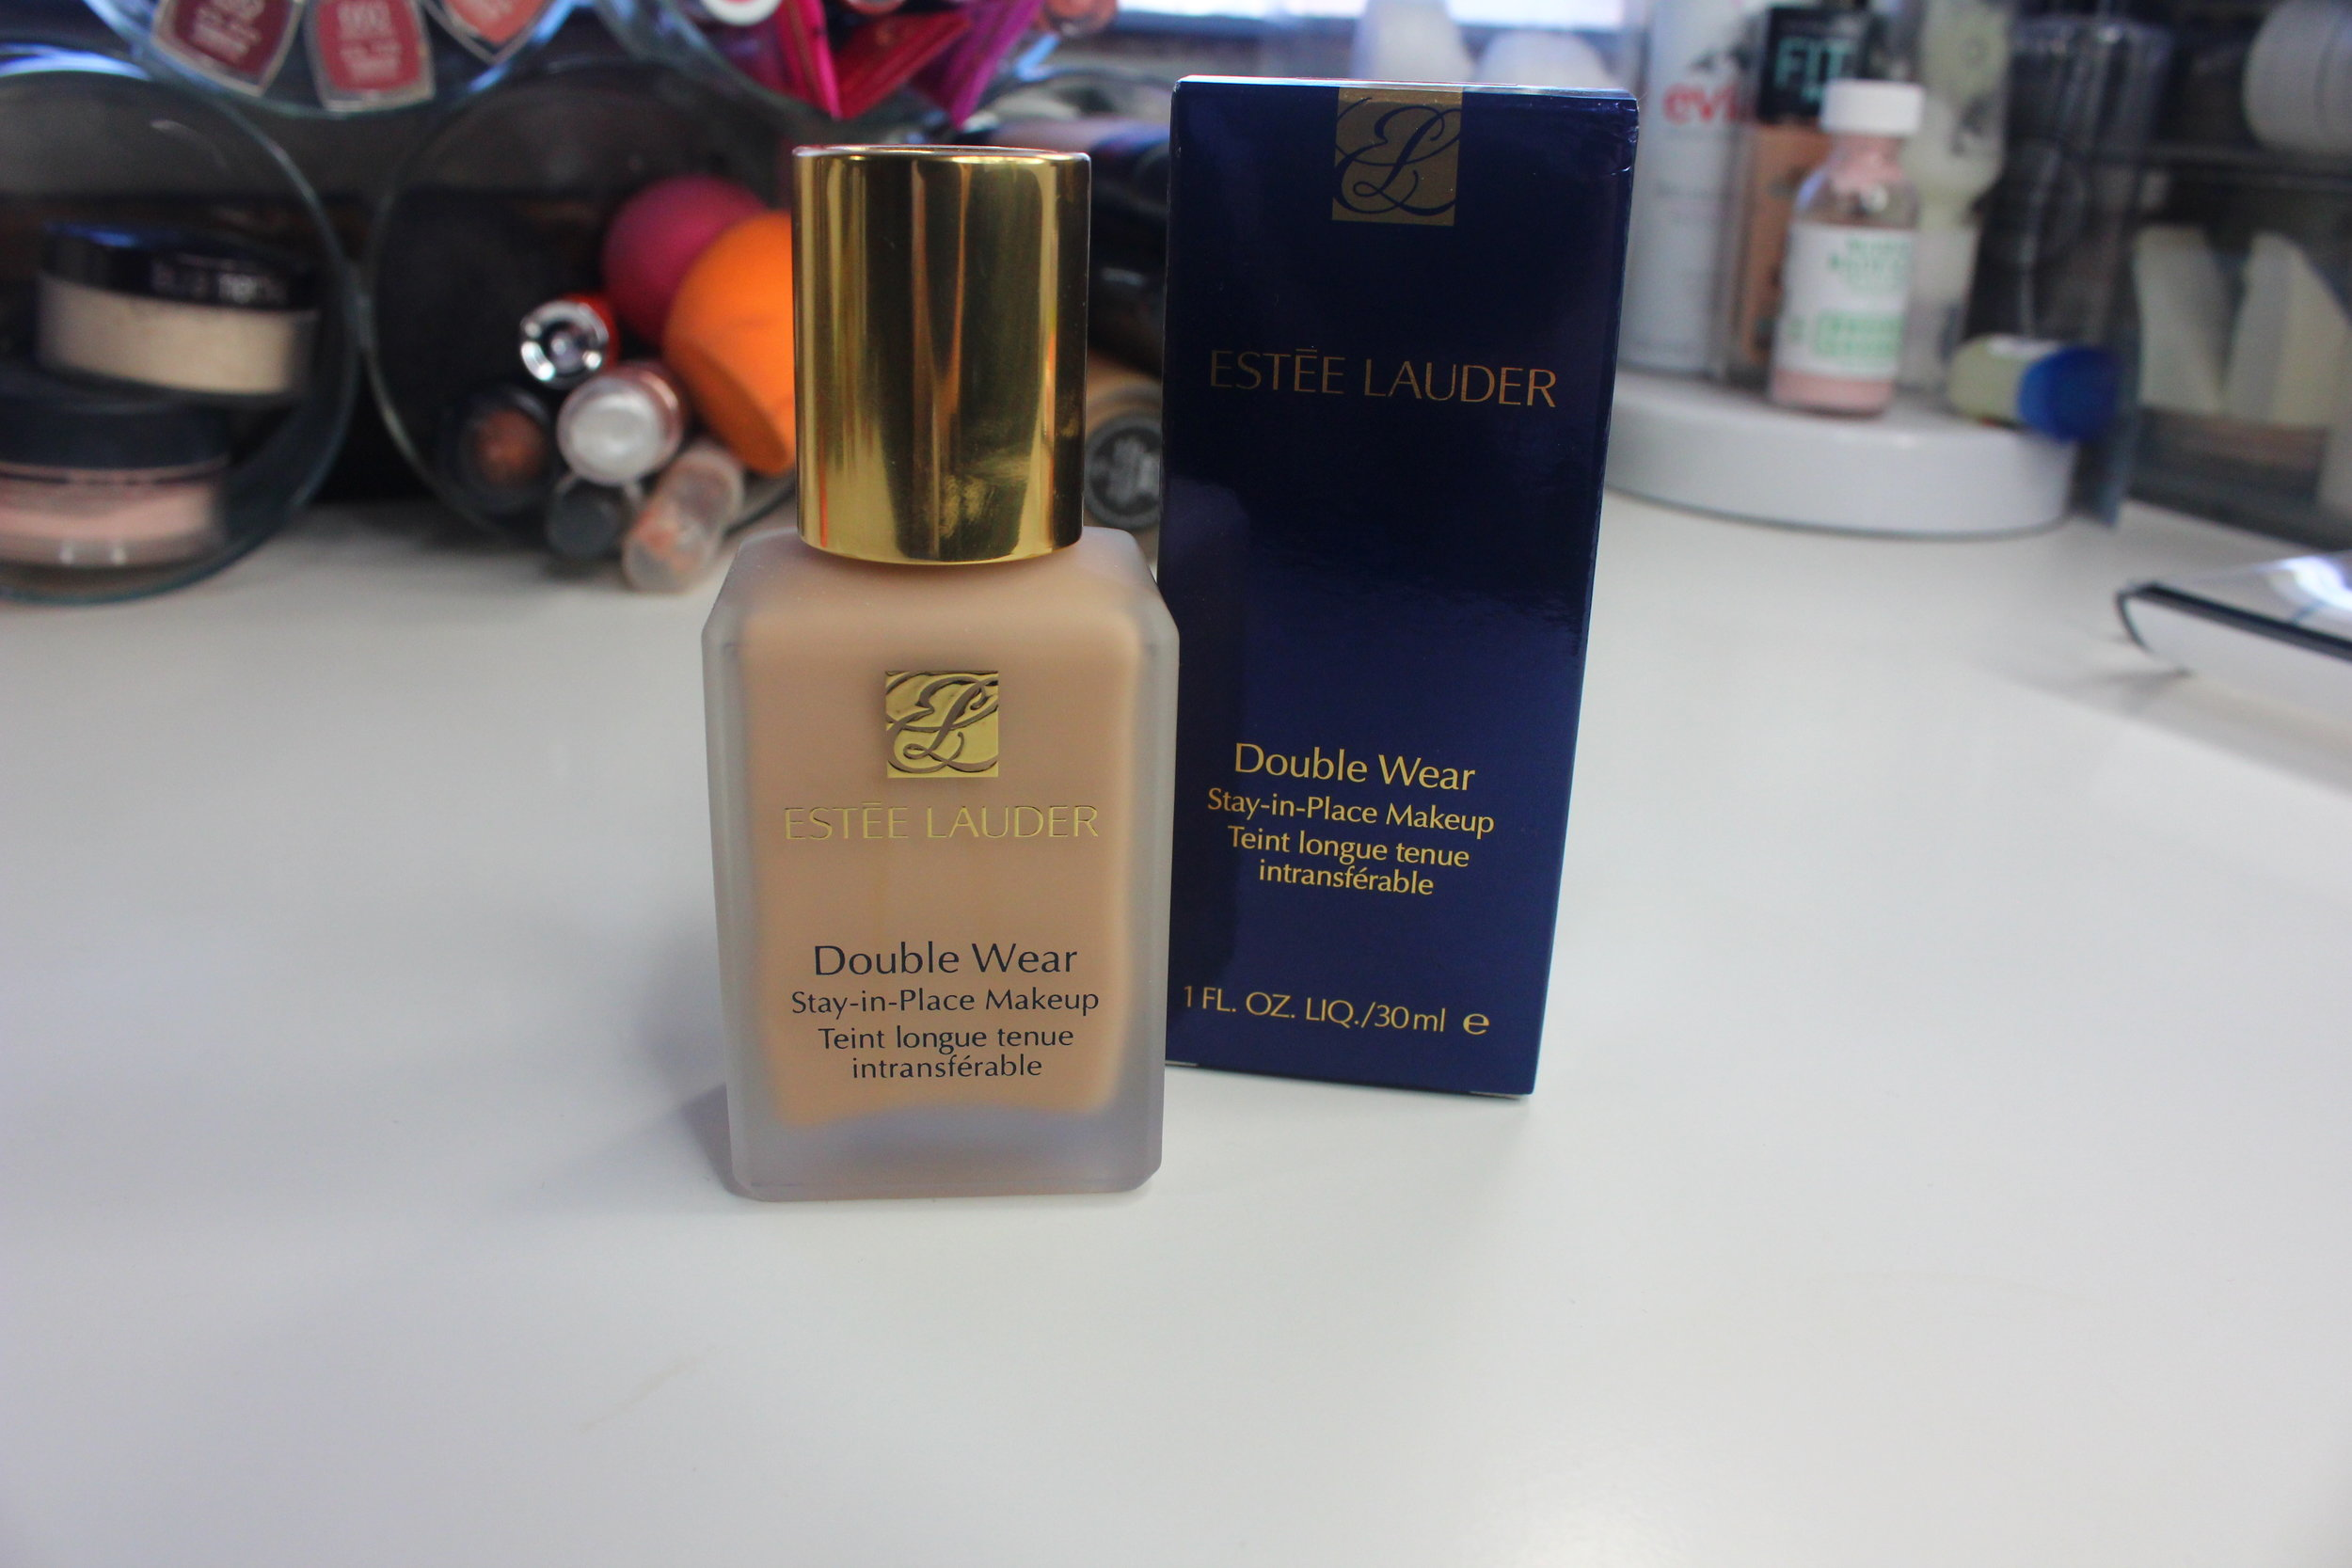 Estee Lauder Double Wear 1C1 Cool Bone Sephora Haul